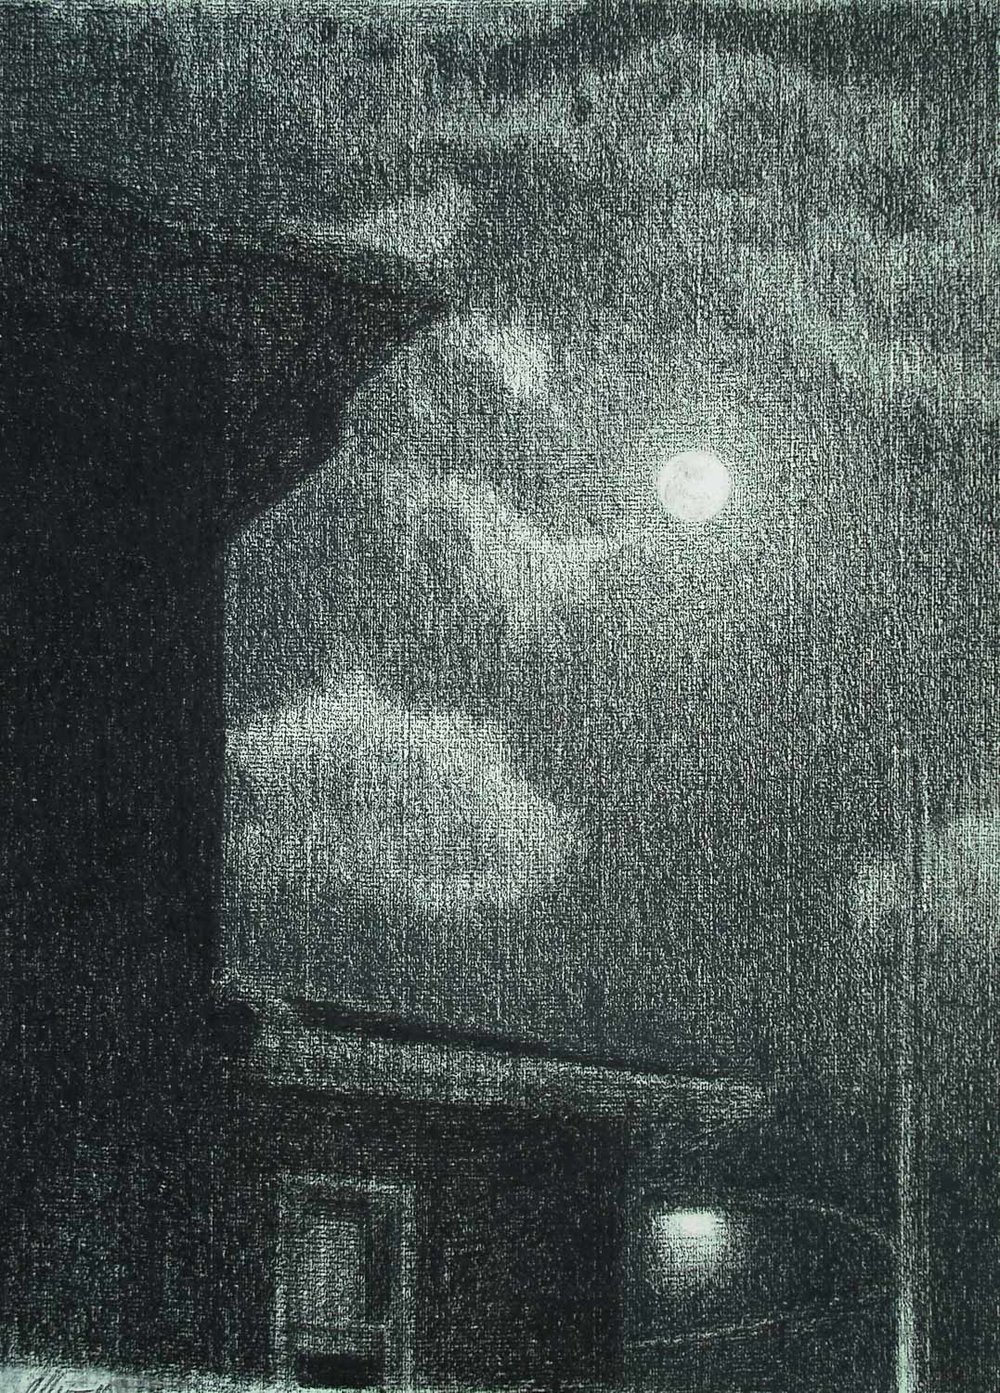 A Moonlit Evening, 2011